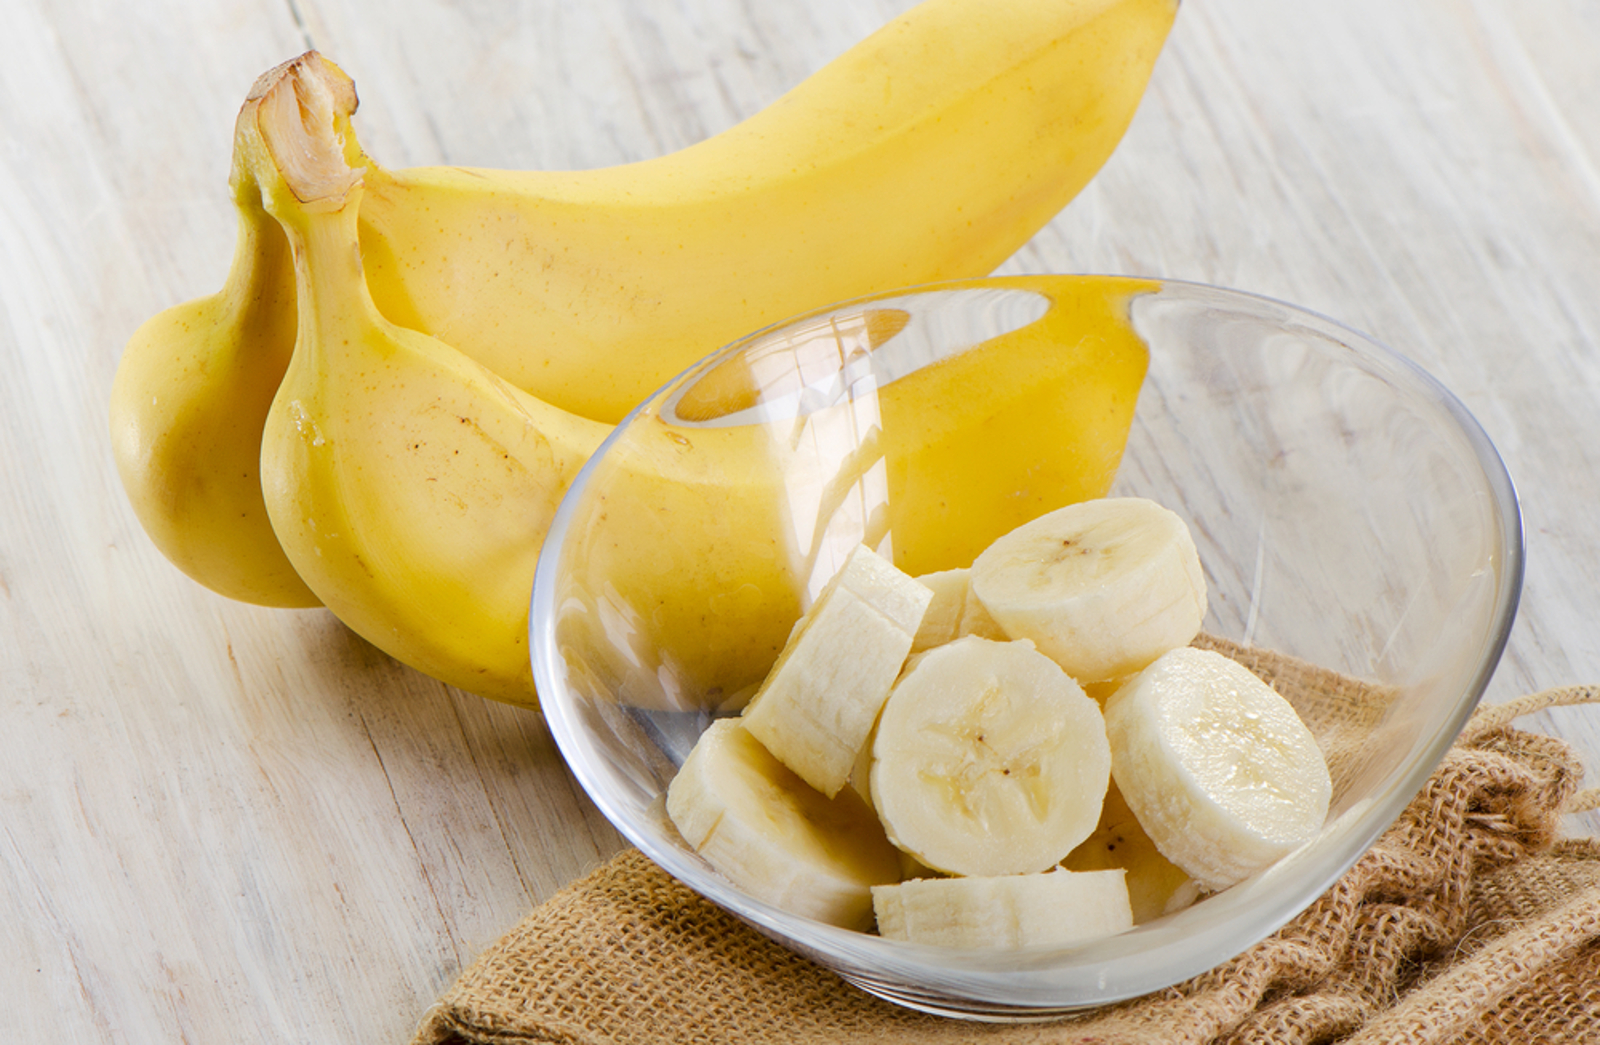 Sleep Tea, Conditioner, and Teeth Whitening: 7 Surprising Ways You Can Use Bananas